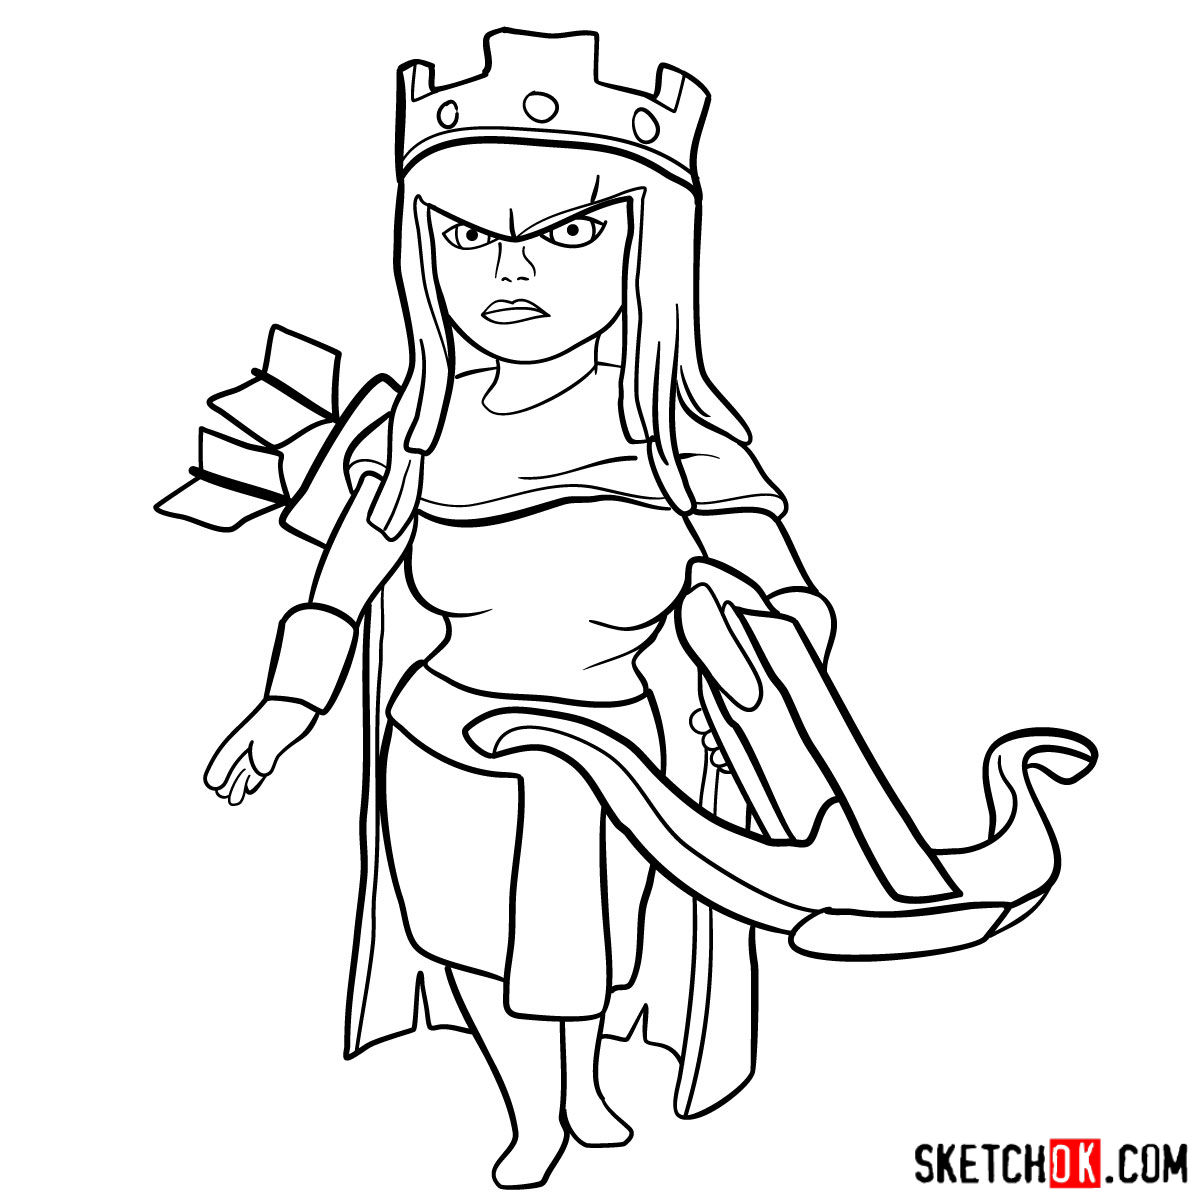 How To Draw Archer Queen From Clash Of Clans